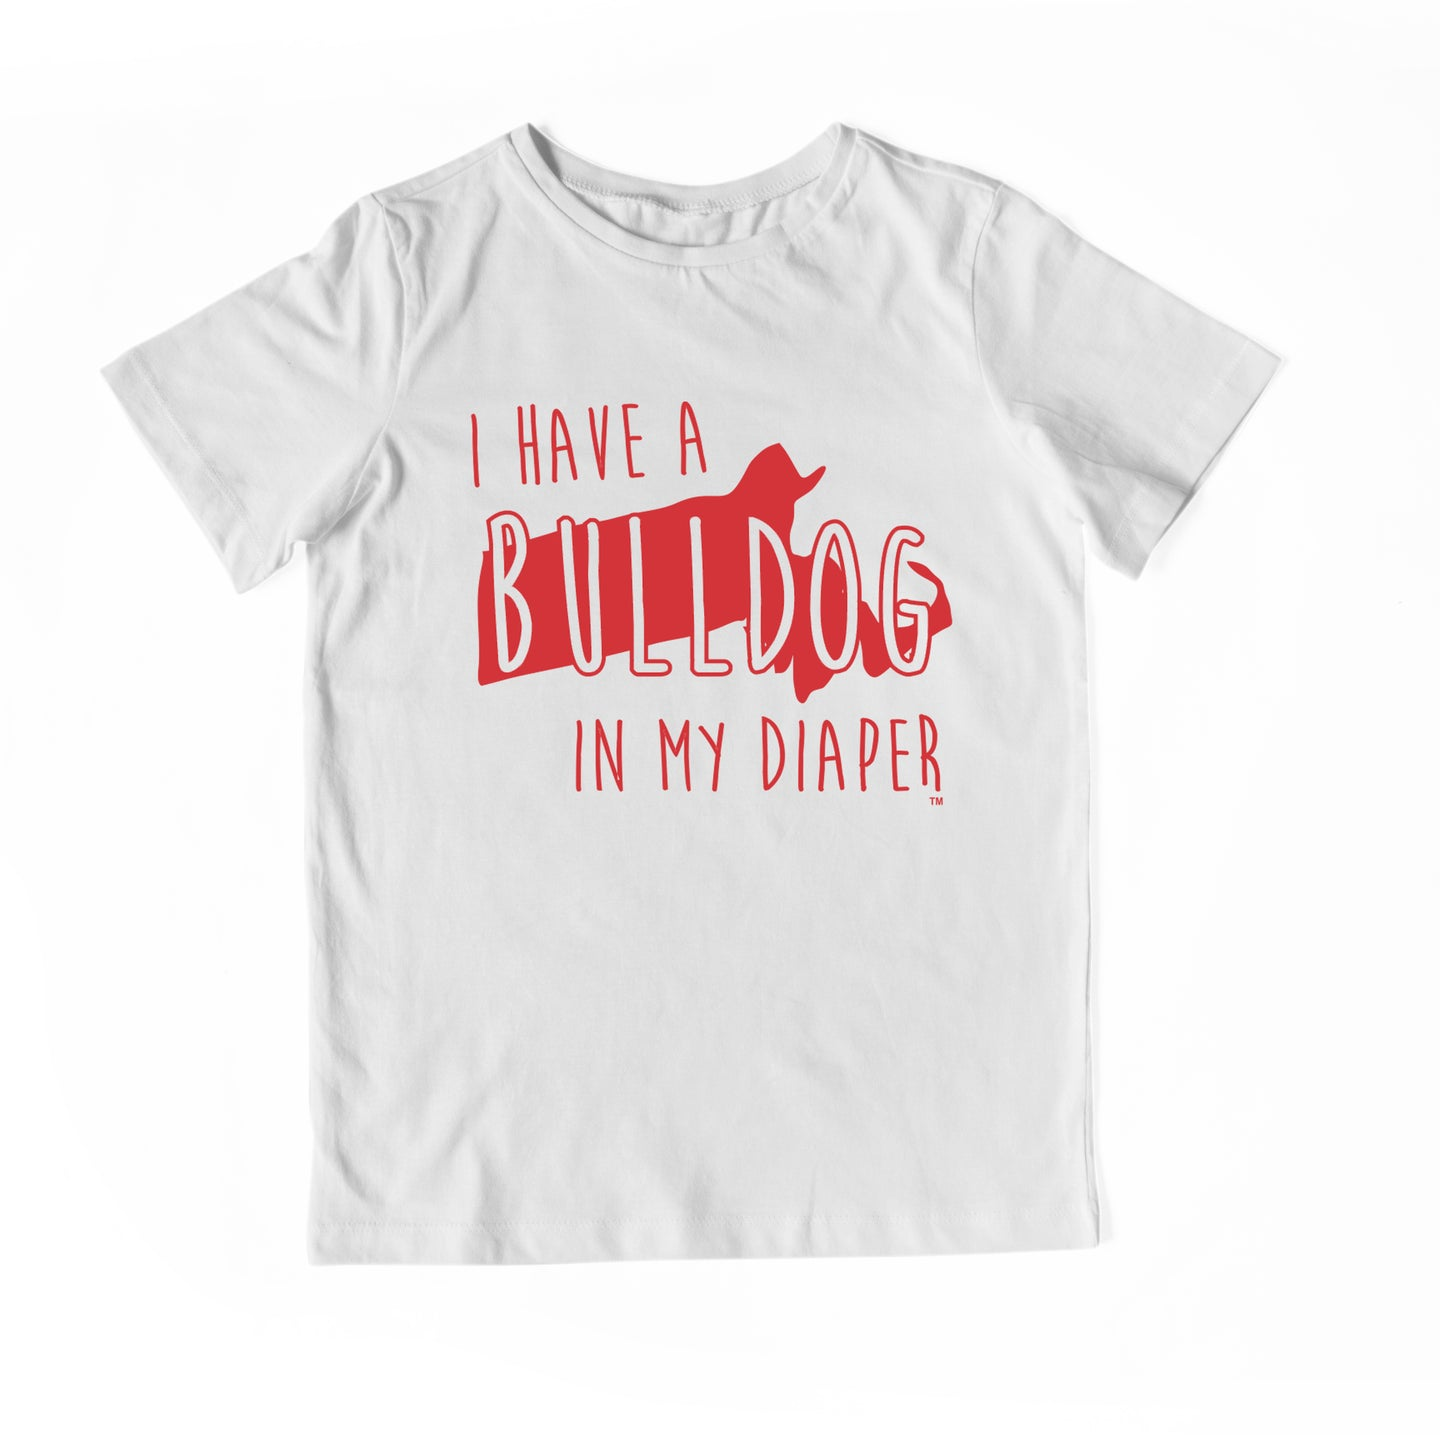 I HAVE A BULLDOG IN MY DIAPER Child Tee